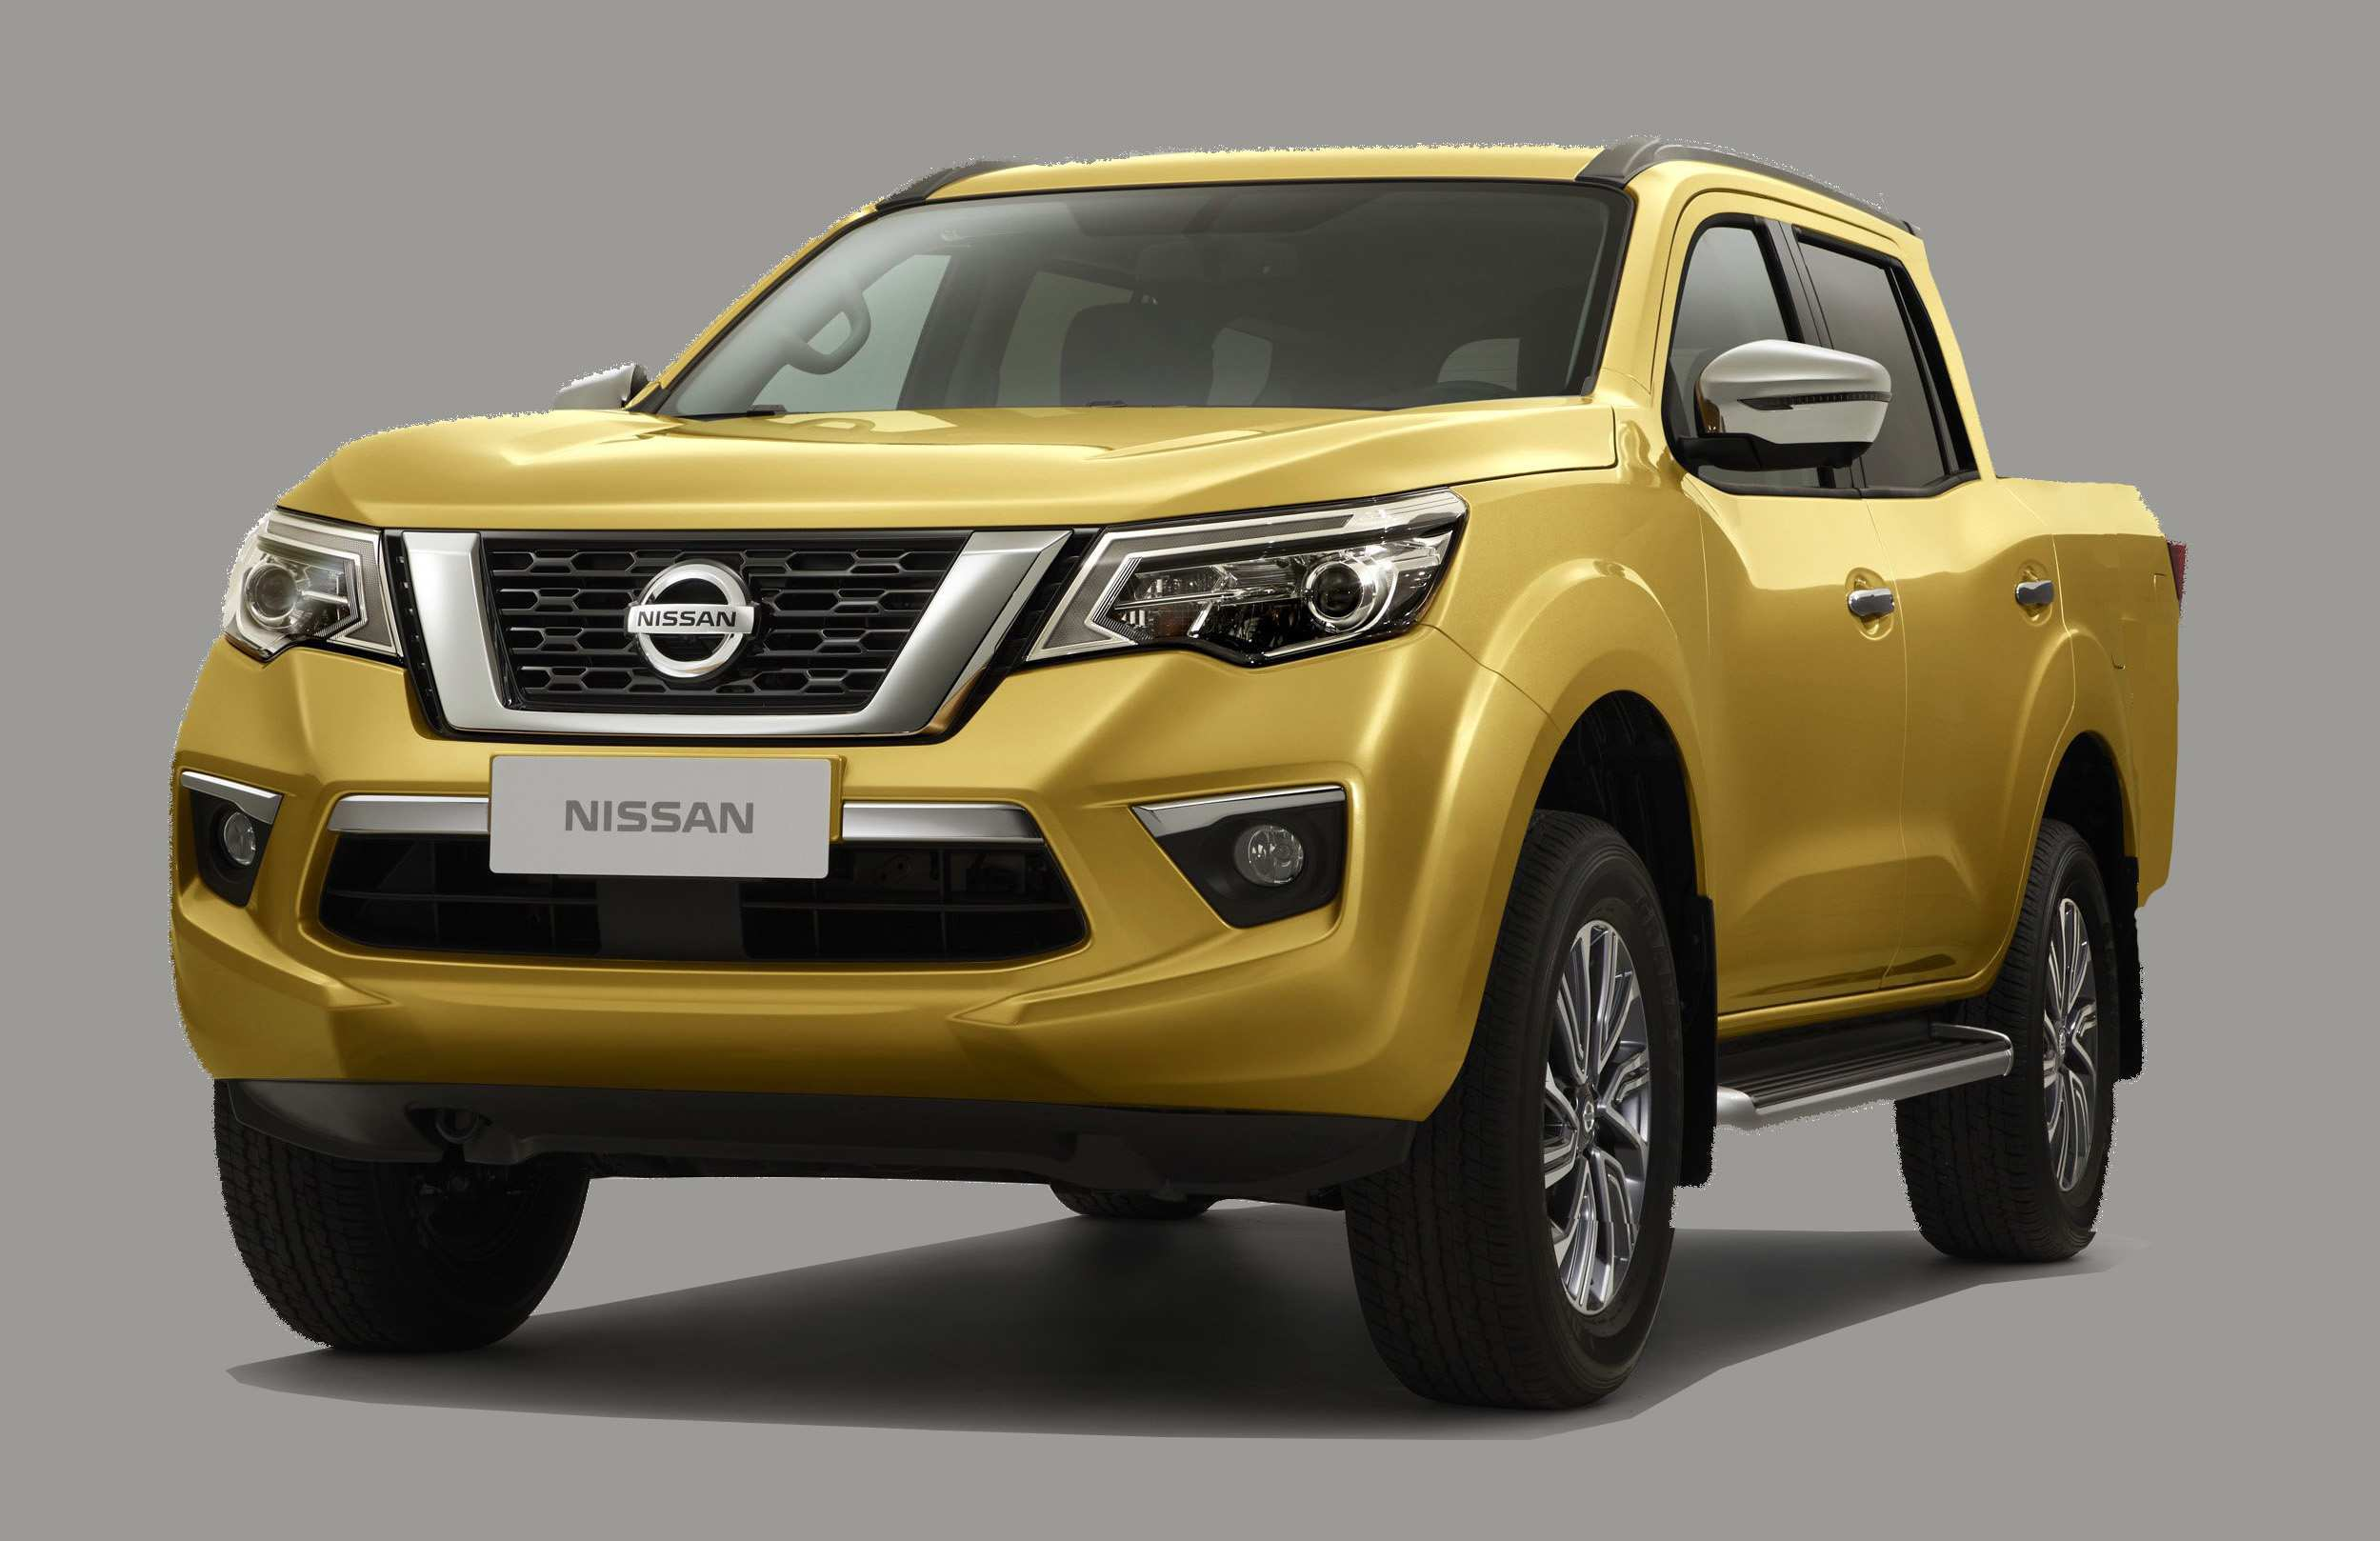 69 The Best 2019 Nissan Navara Exterior And Interior